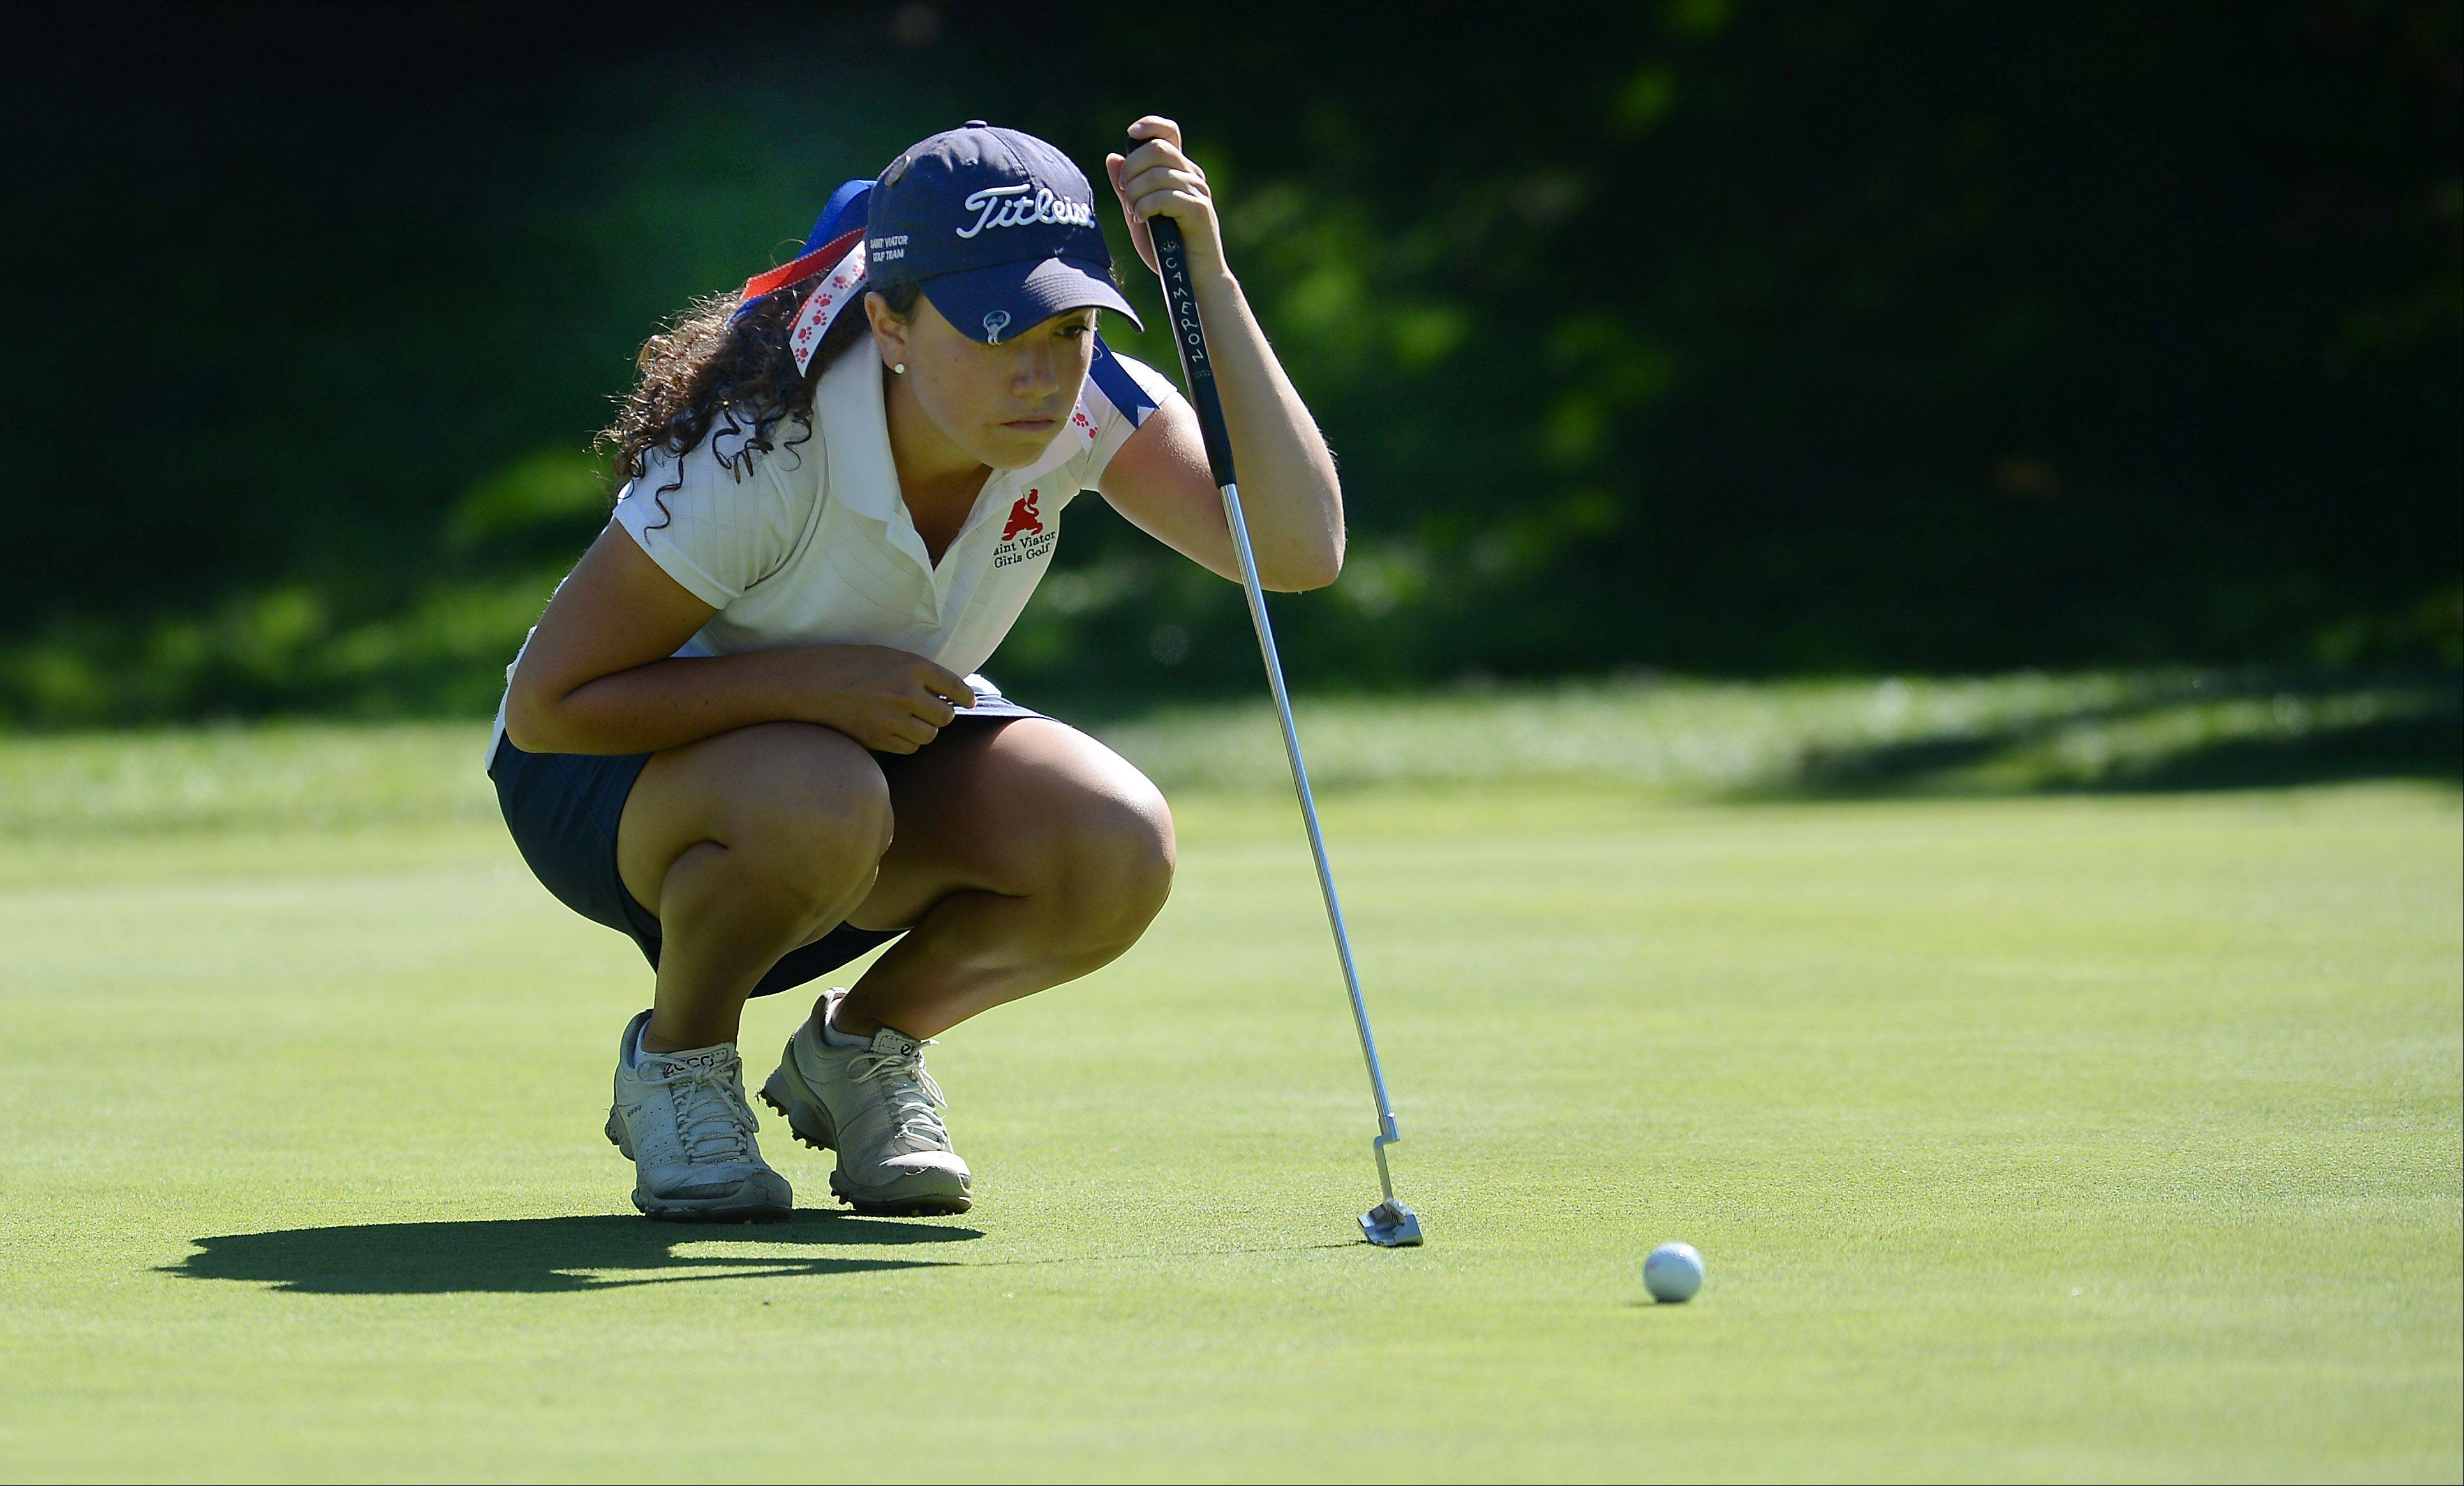 St. Viator's Dana Gattone eyes her ball for a putt on No. 18 in the girls golf regional at Mt. Prospect Golf Club on Wednesday.